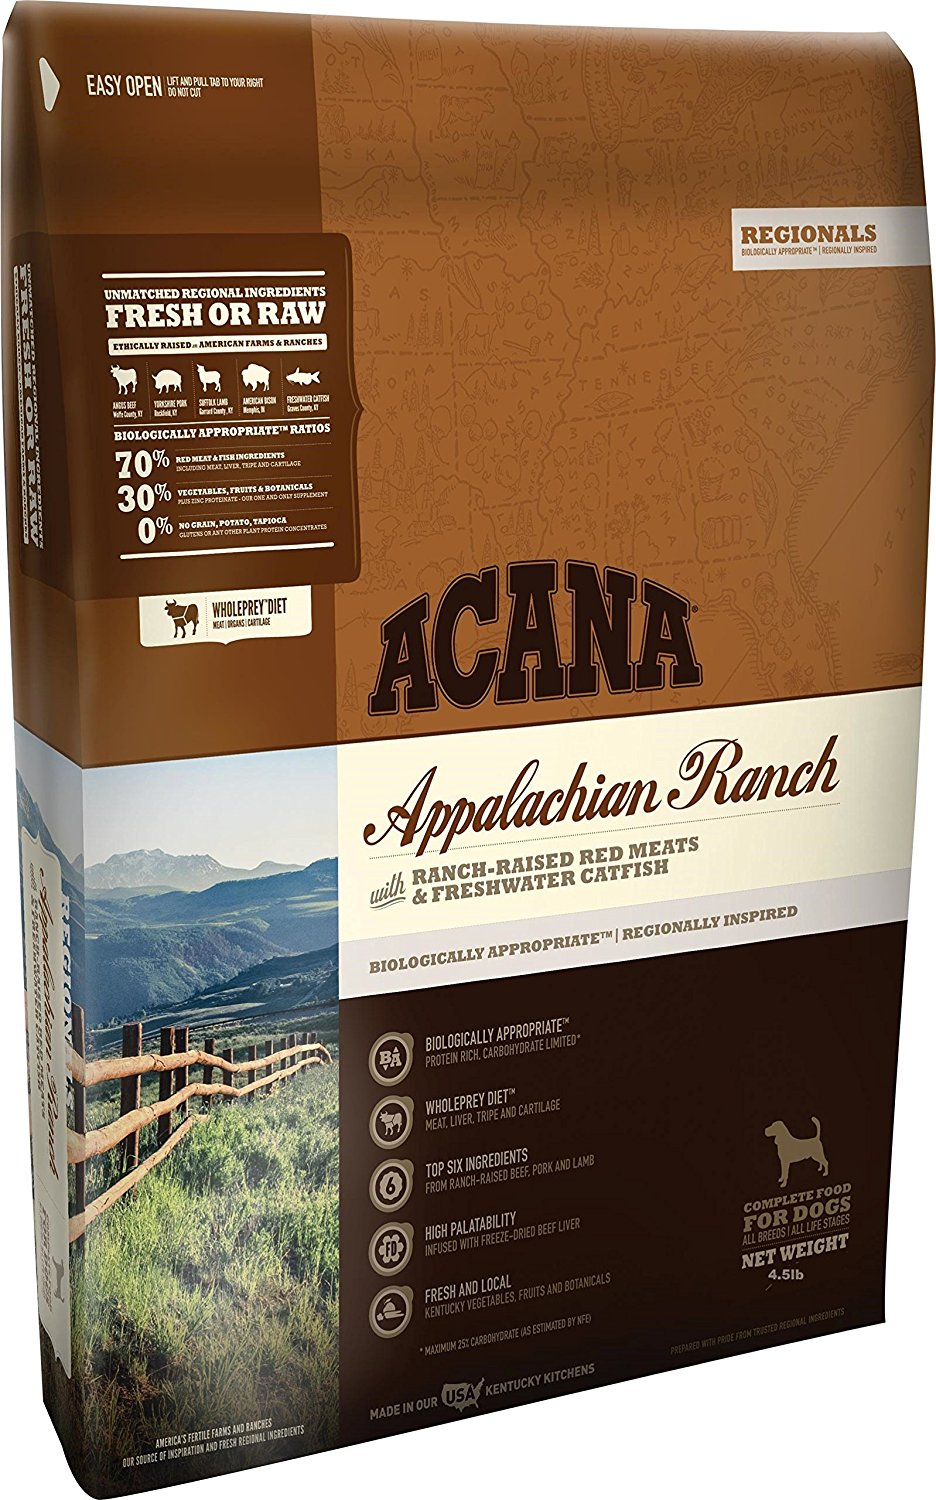 Acana Regionals Appalachian Ranch - The Ultimate Healthy Dog Life: Acana Dog Food Reviews